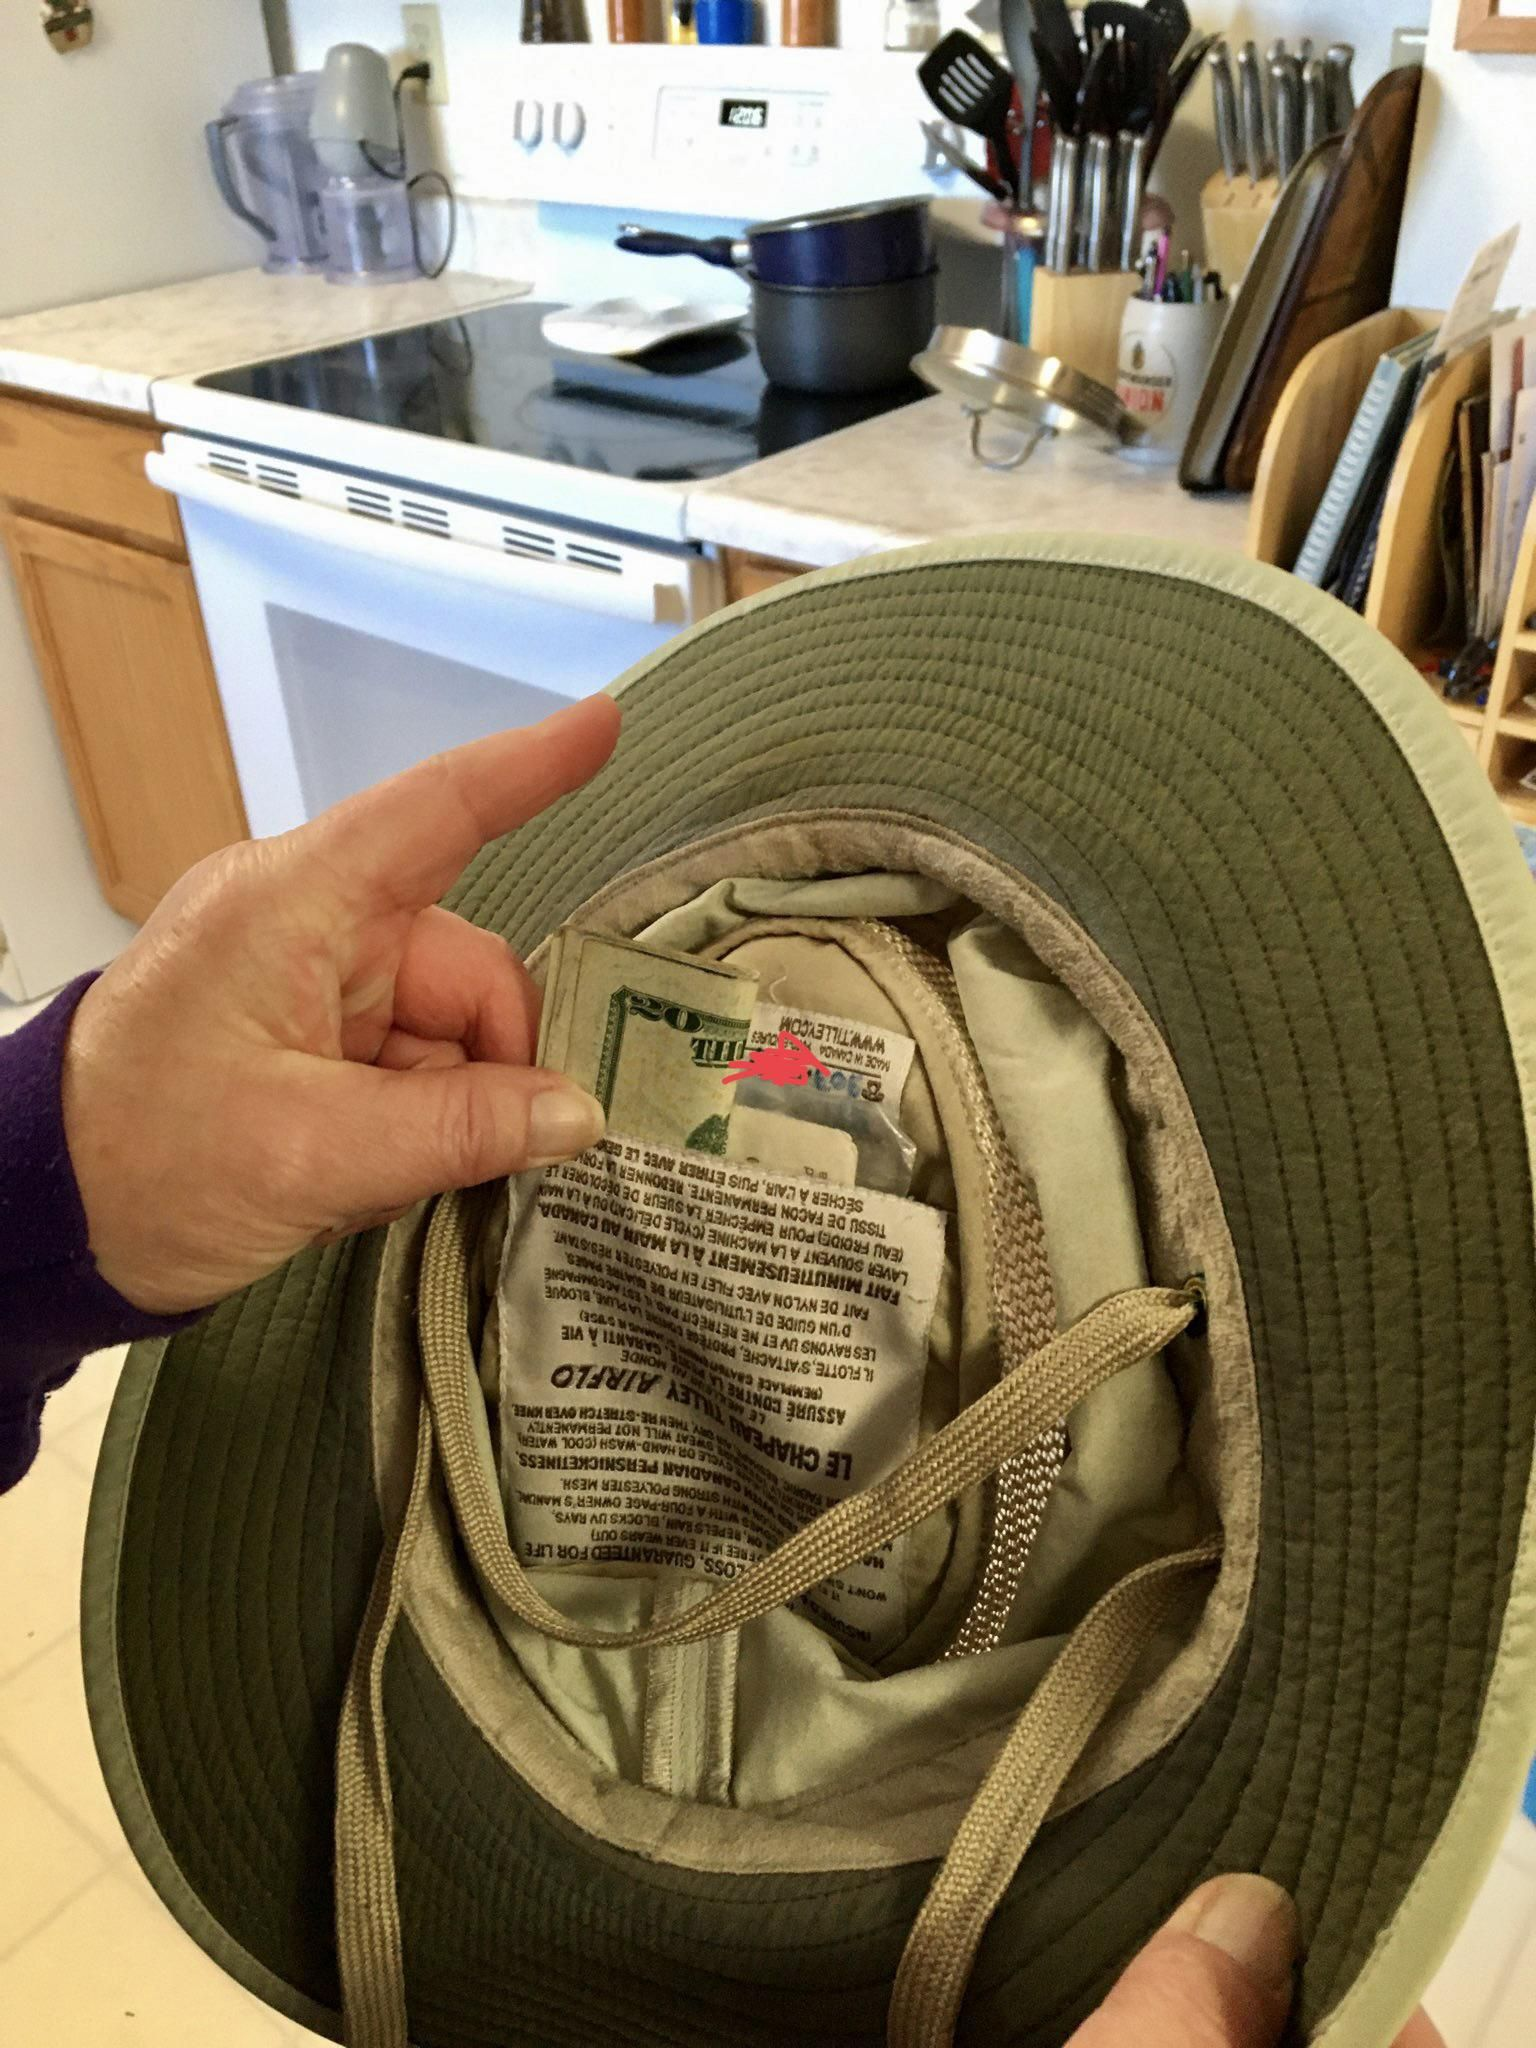 Only inheritance from dad: 100 bucks stashed in a stolen fishing hat.